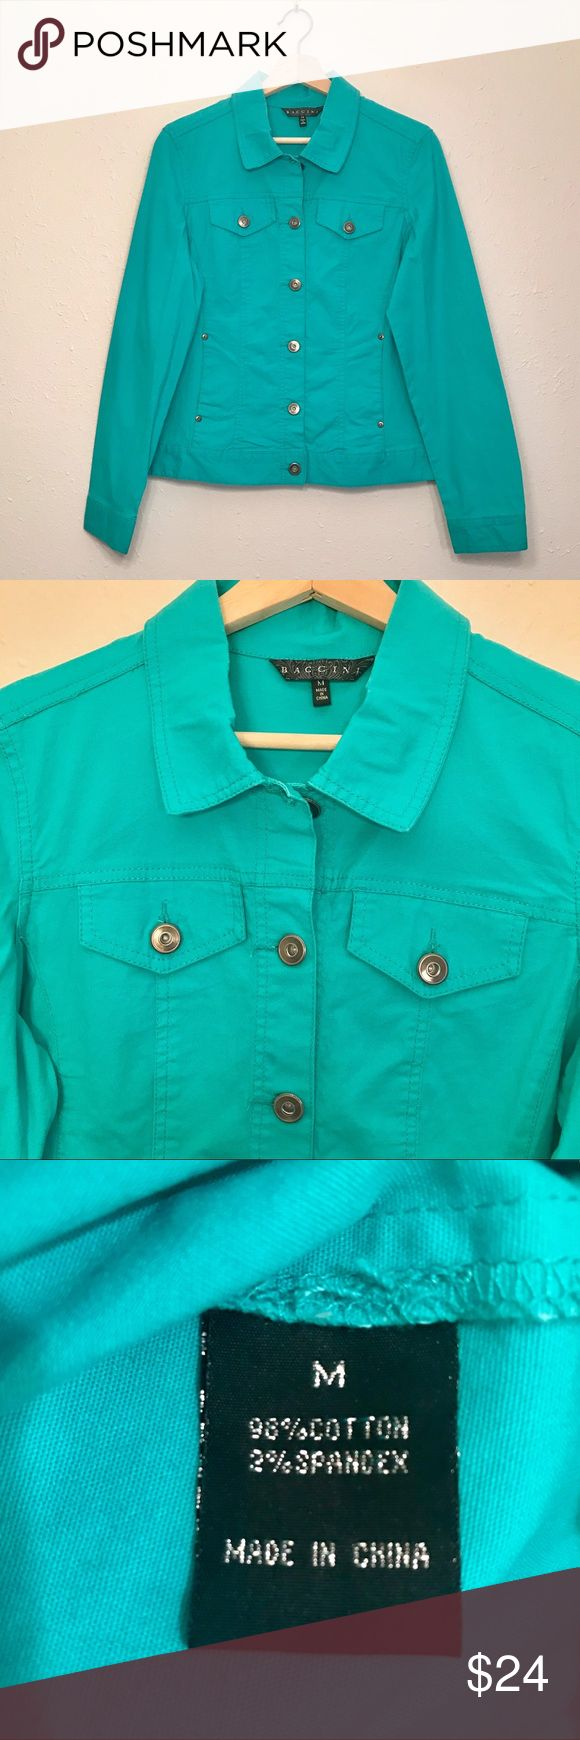 Cool aqua jean jacket Western style jean jacket in bright aqua. Material has a good bit of stretch for a flattering look. EUC, only worn once or twice. Perfect for brightening up a weekend look.  ✨Measurements or more photos upon request ✨ ✨Comment with any questions prior to purchase✨ ✨Bundles or offers welcomed✨ Jackets & Coats